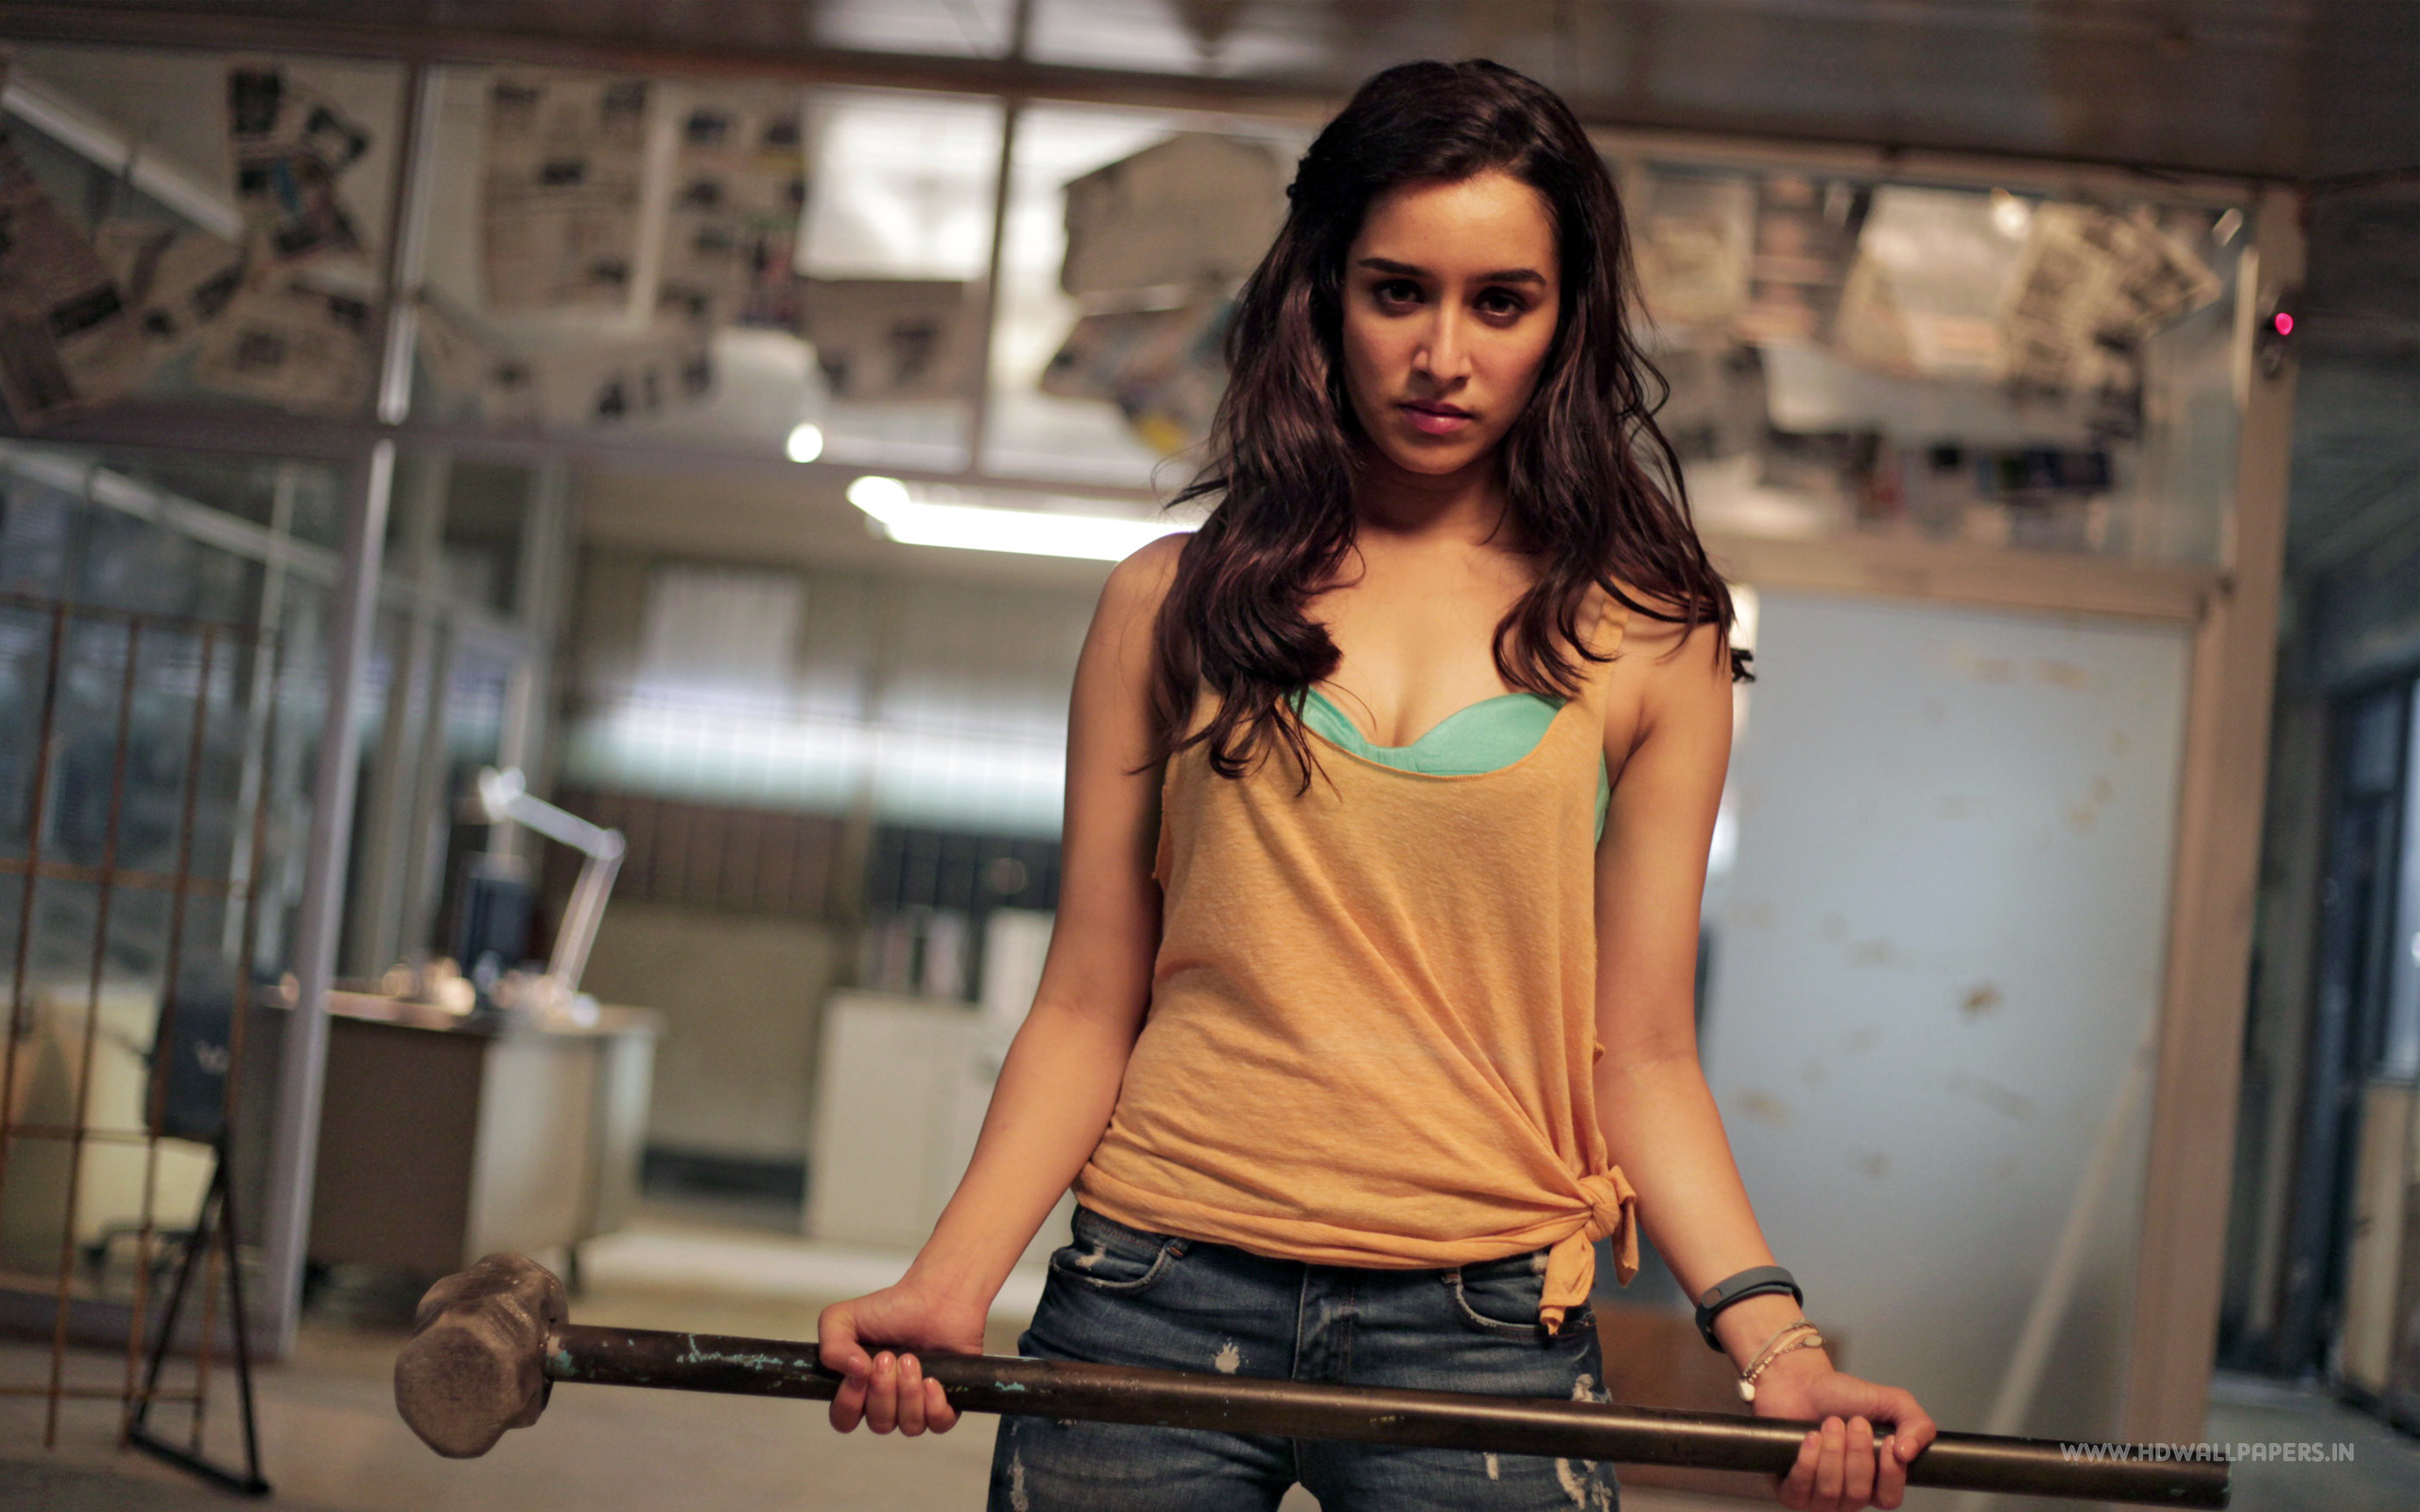 shraddha wallpapers, photos and desktop backgrounds up to 8k